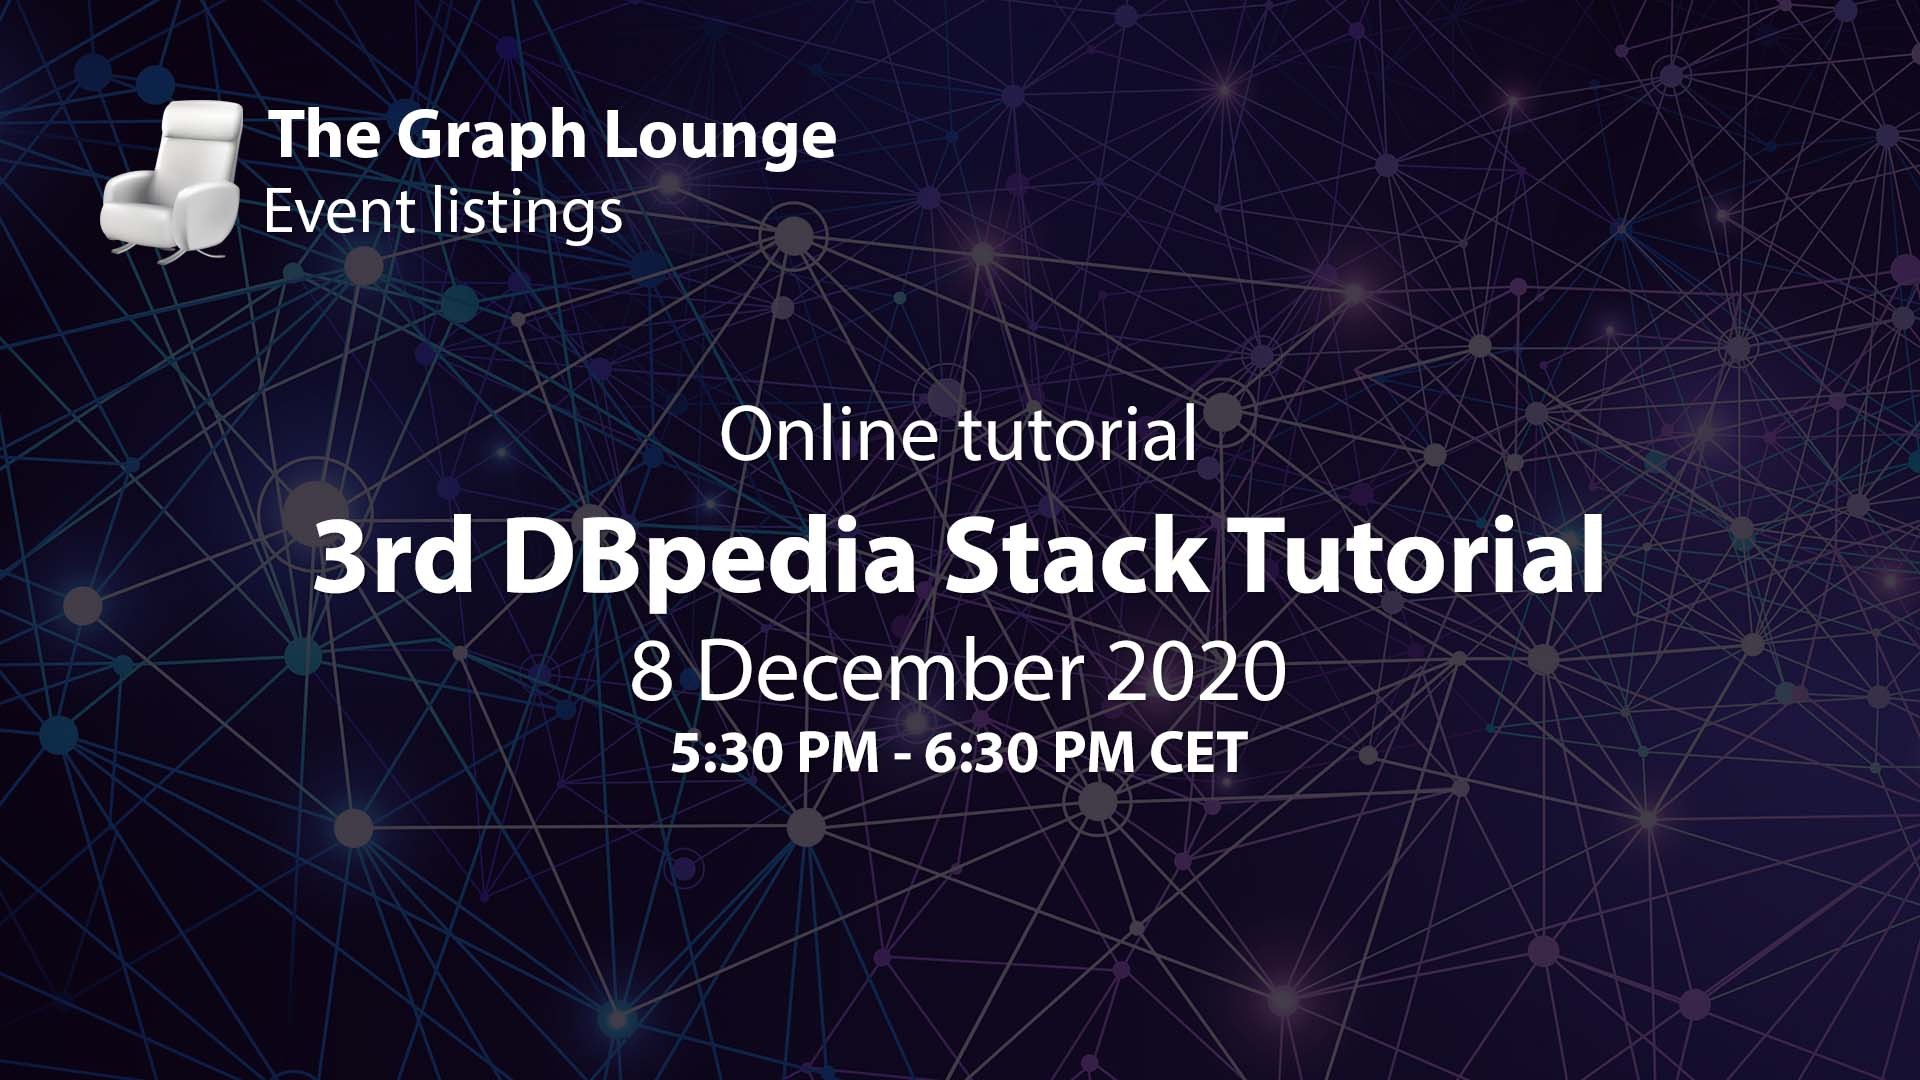 3rd DBpedia Stack Tutorial